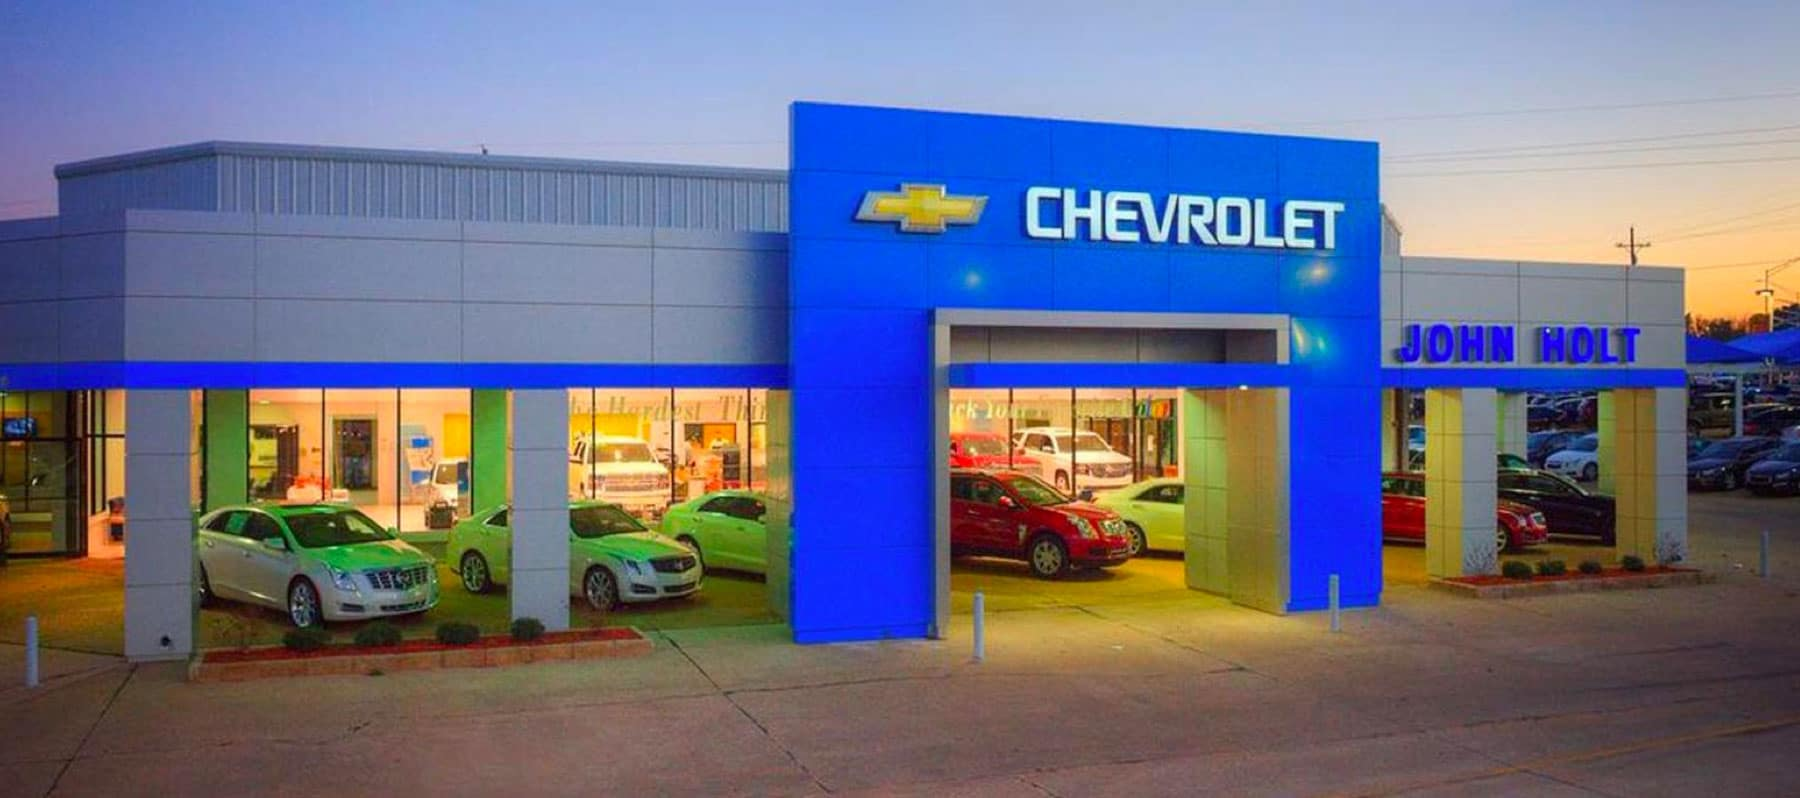 Exterior shot of the dealership